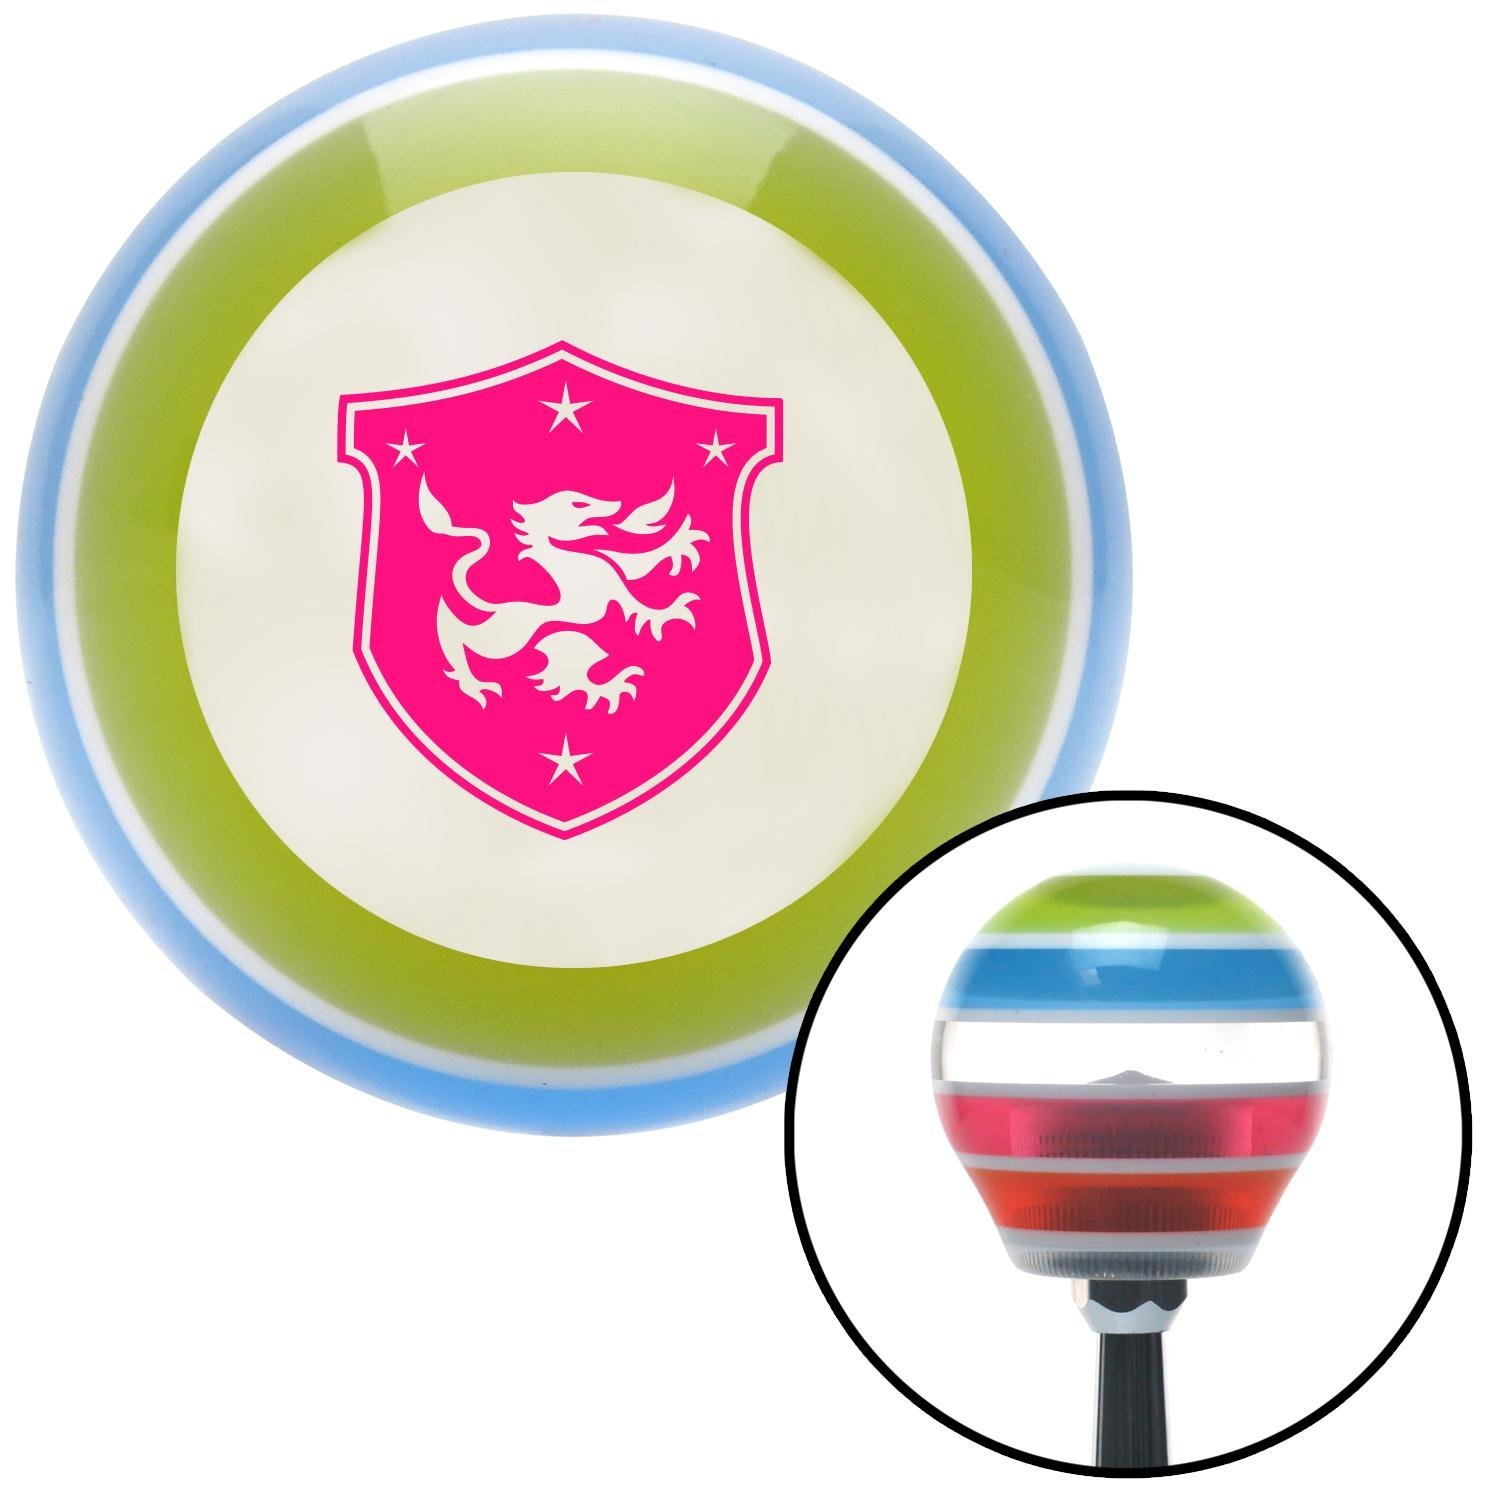 American Shifter 133018 Stripe Shift Knob with M16 x 1.5 Insert Pink Dragon Crest